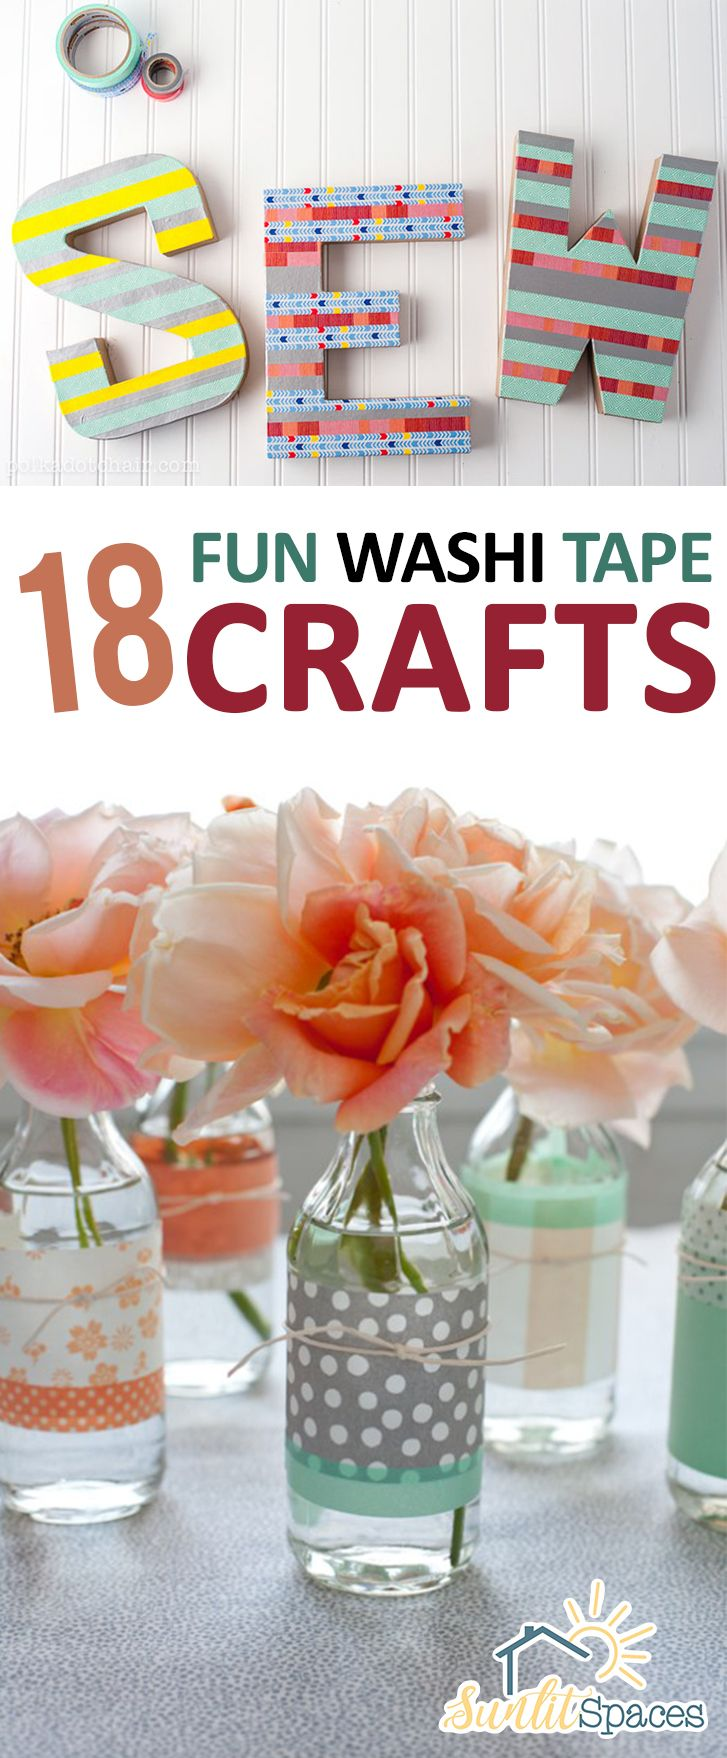 382 best Craft Ideas images on Pinterest Projects Crafts and DIY